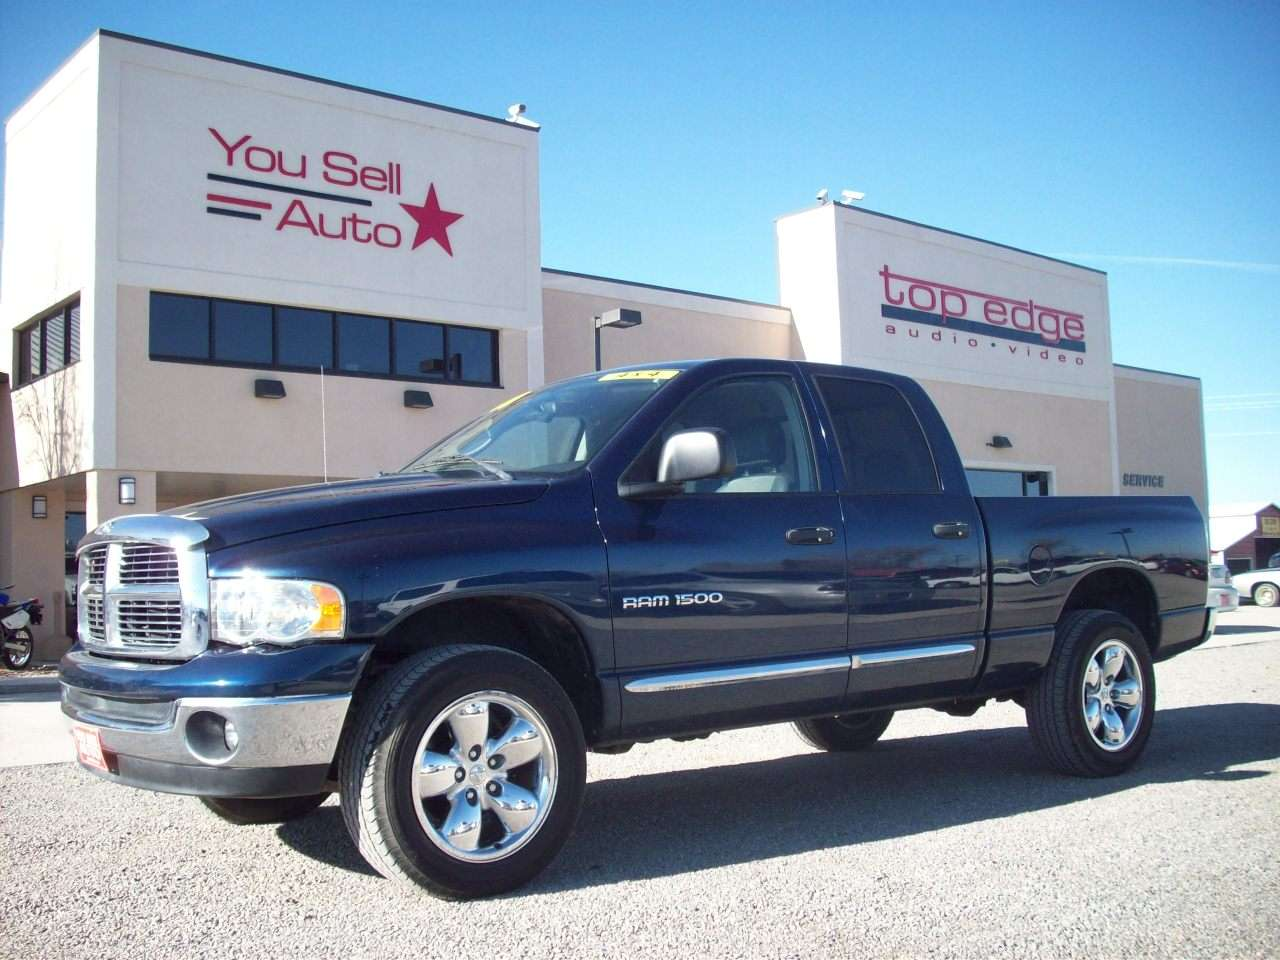 2004 dodge ram 1500 quad cab 4wd pickup sold you sell auto. Black Bedroom Furniture Sets. Home Design Ideas